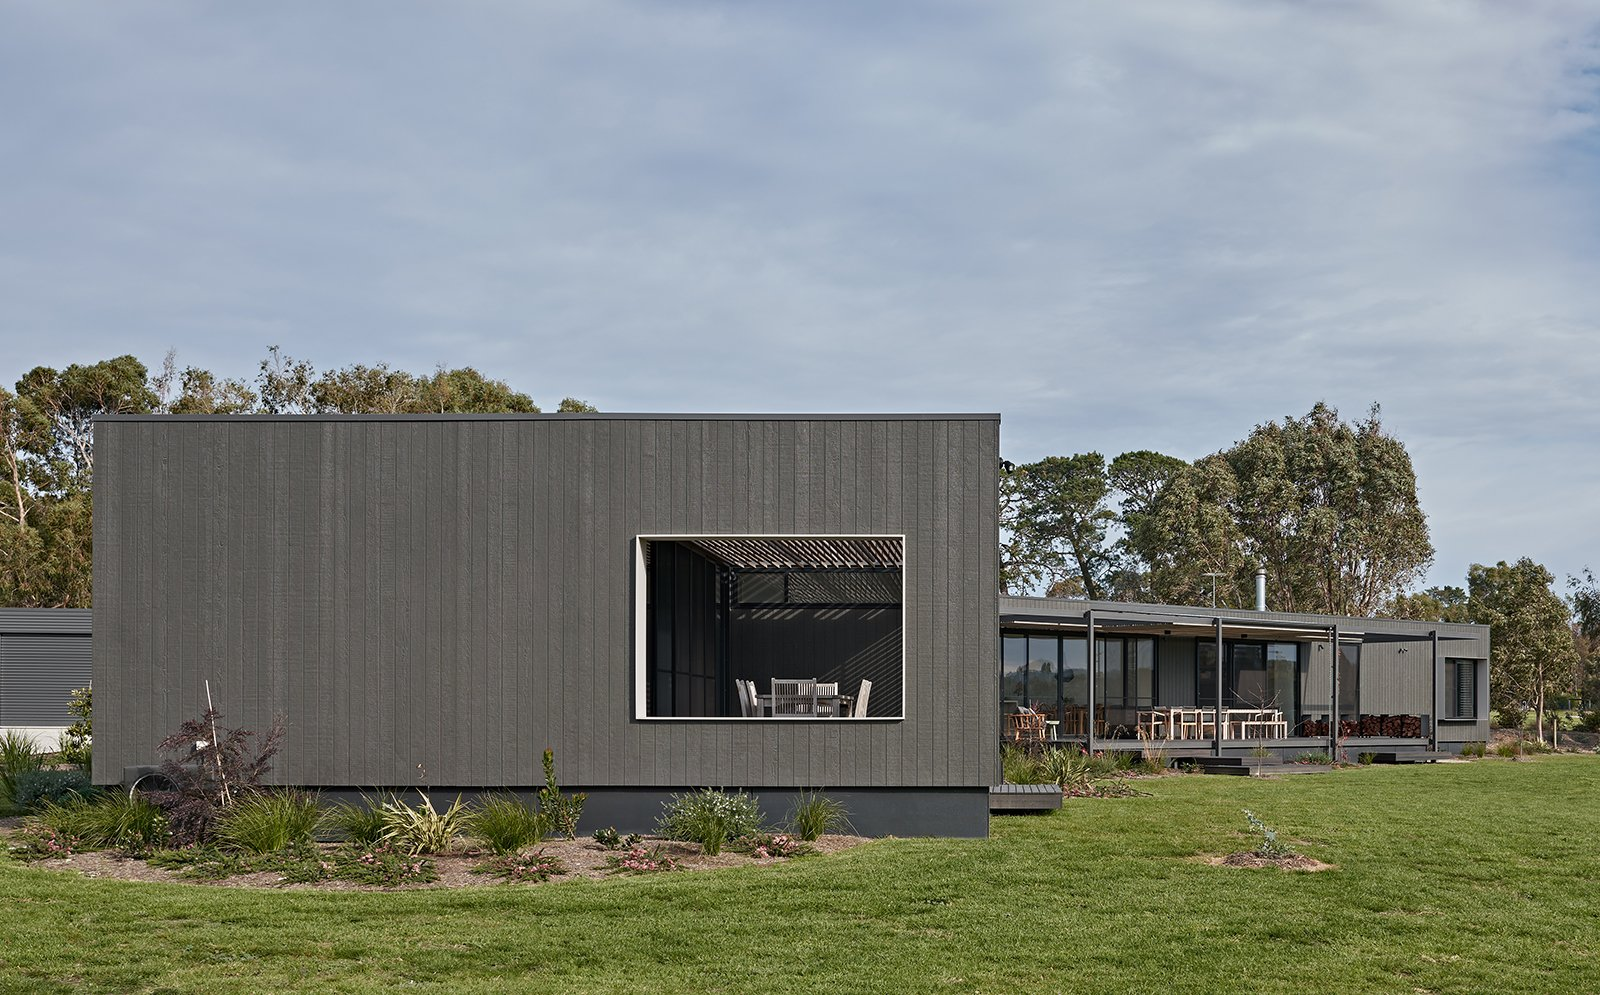 Exterior, Wood Siding Material, Metal Roof Material, Prefab Building Type, and Flat RoofLine  The Balnarring Beach House